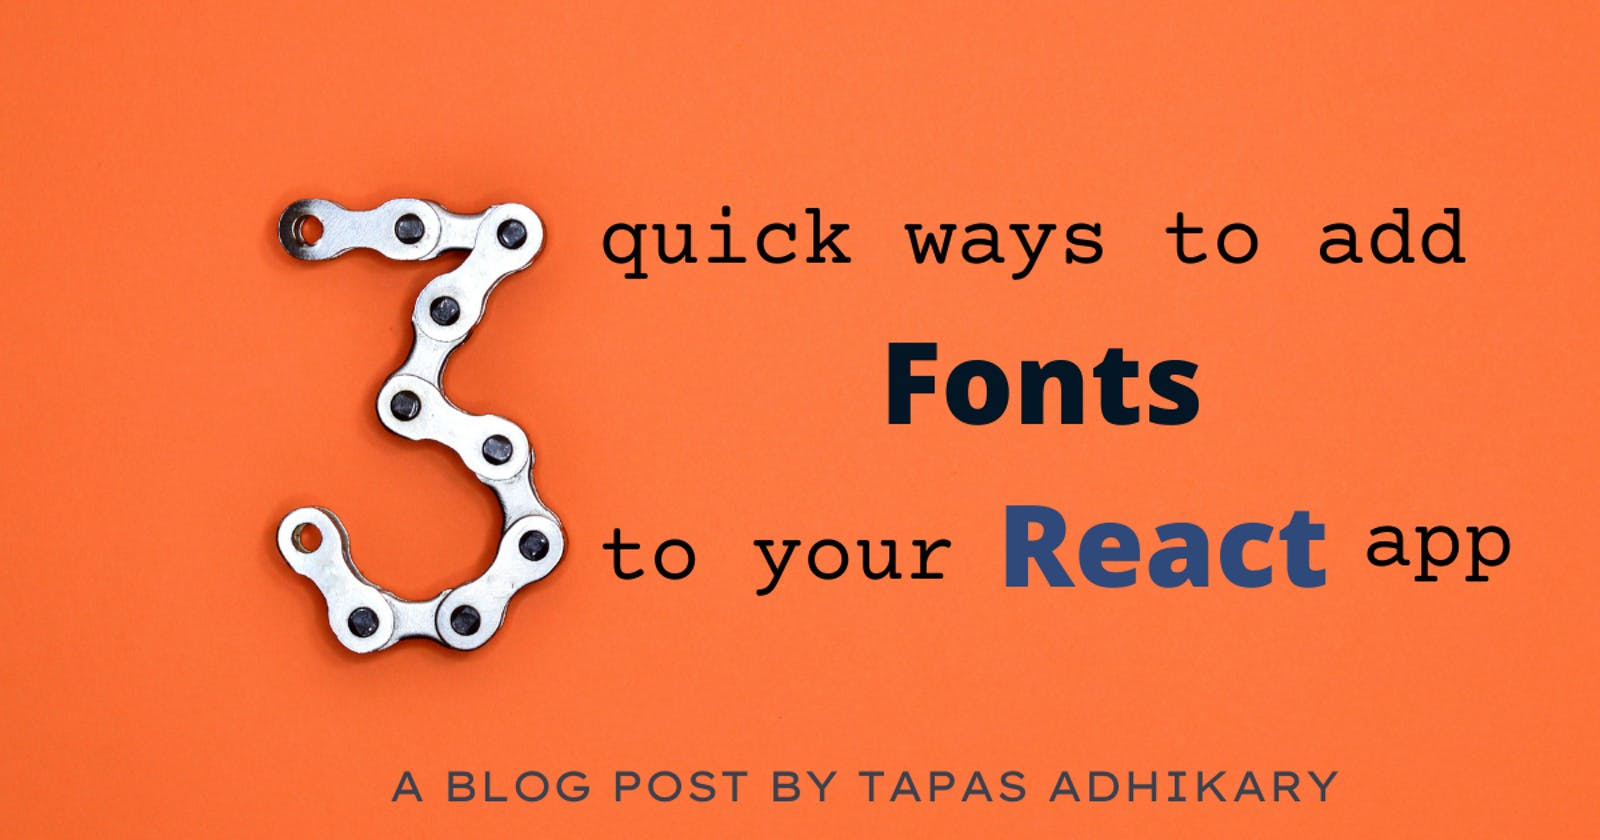 3 quick ways to add fonts to your React app